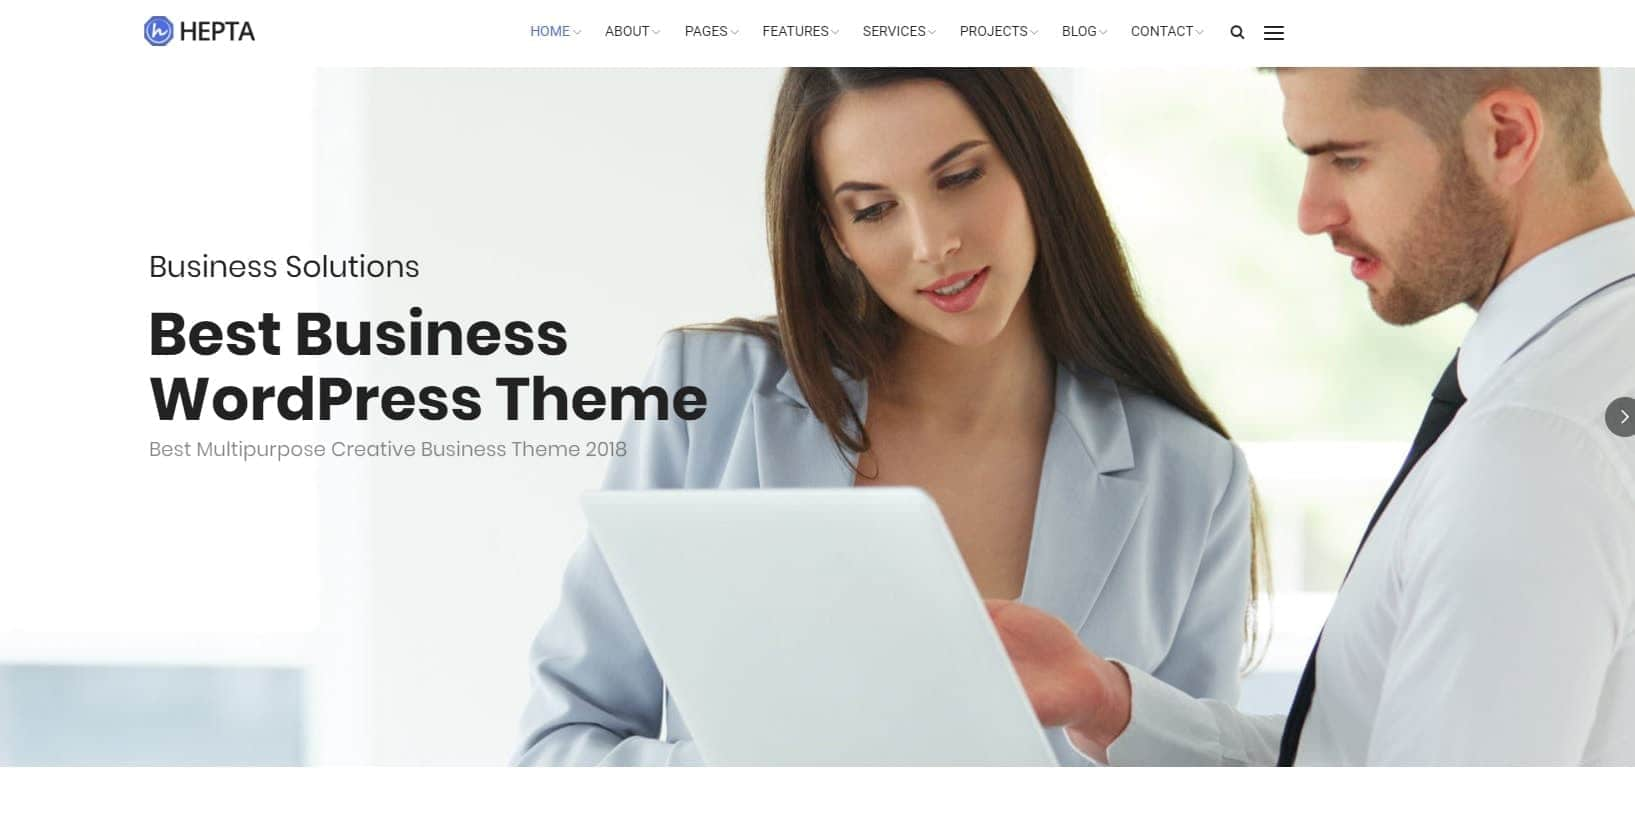 hepta-wordpress-business-theme